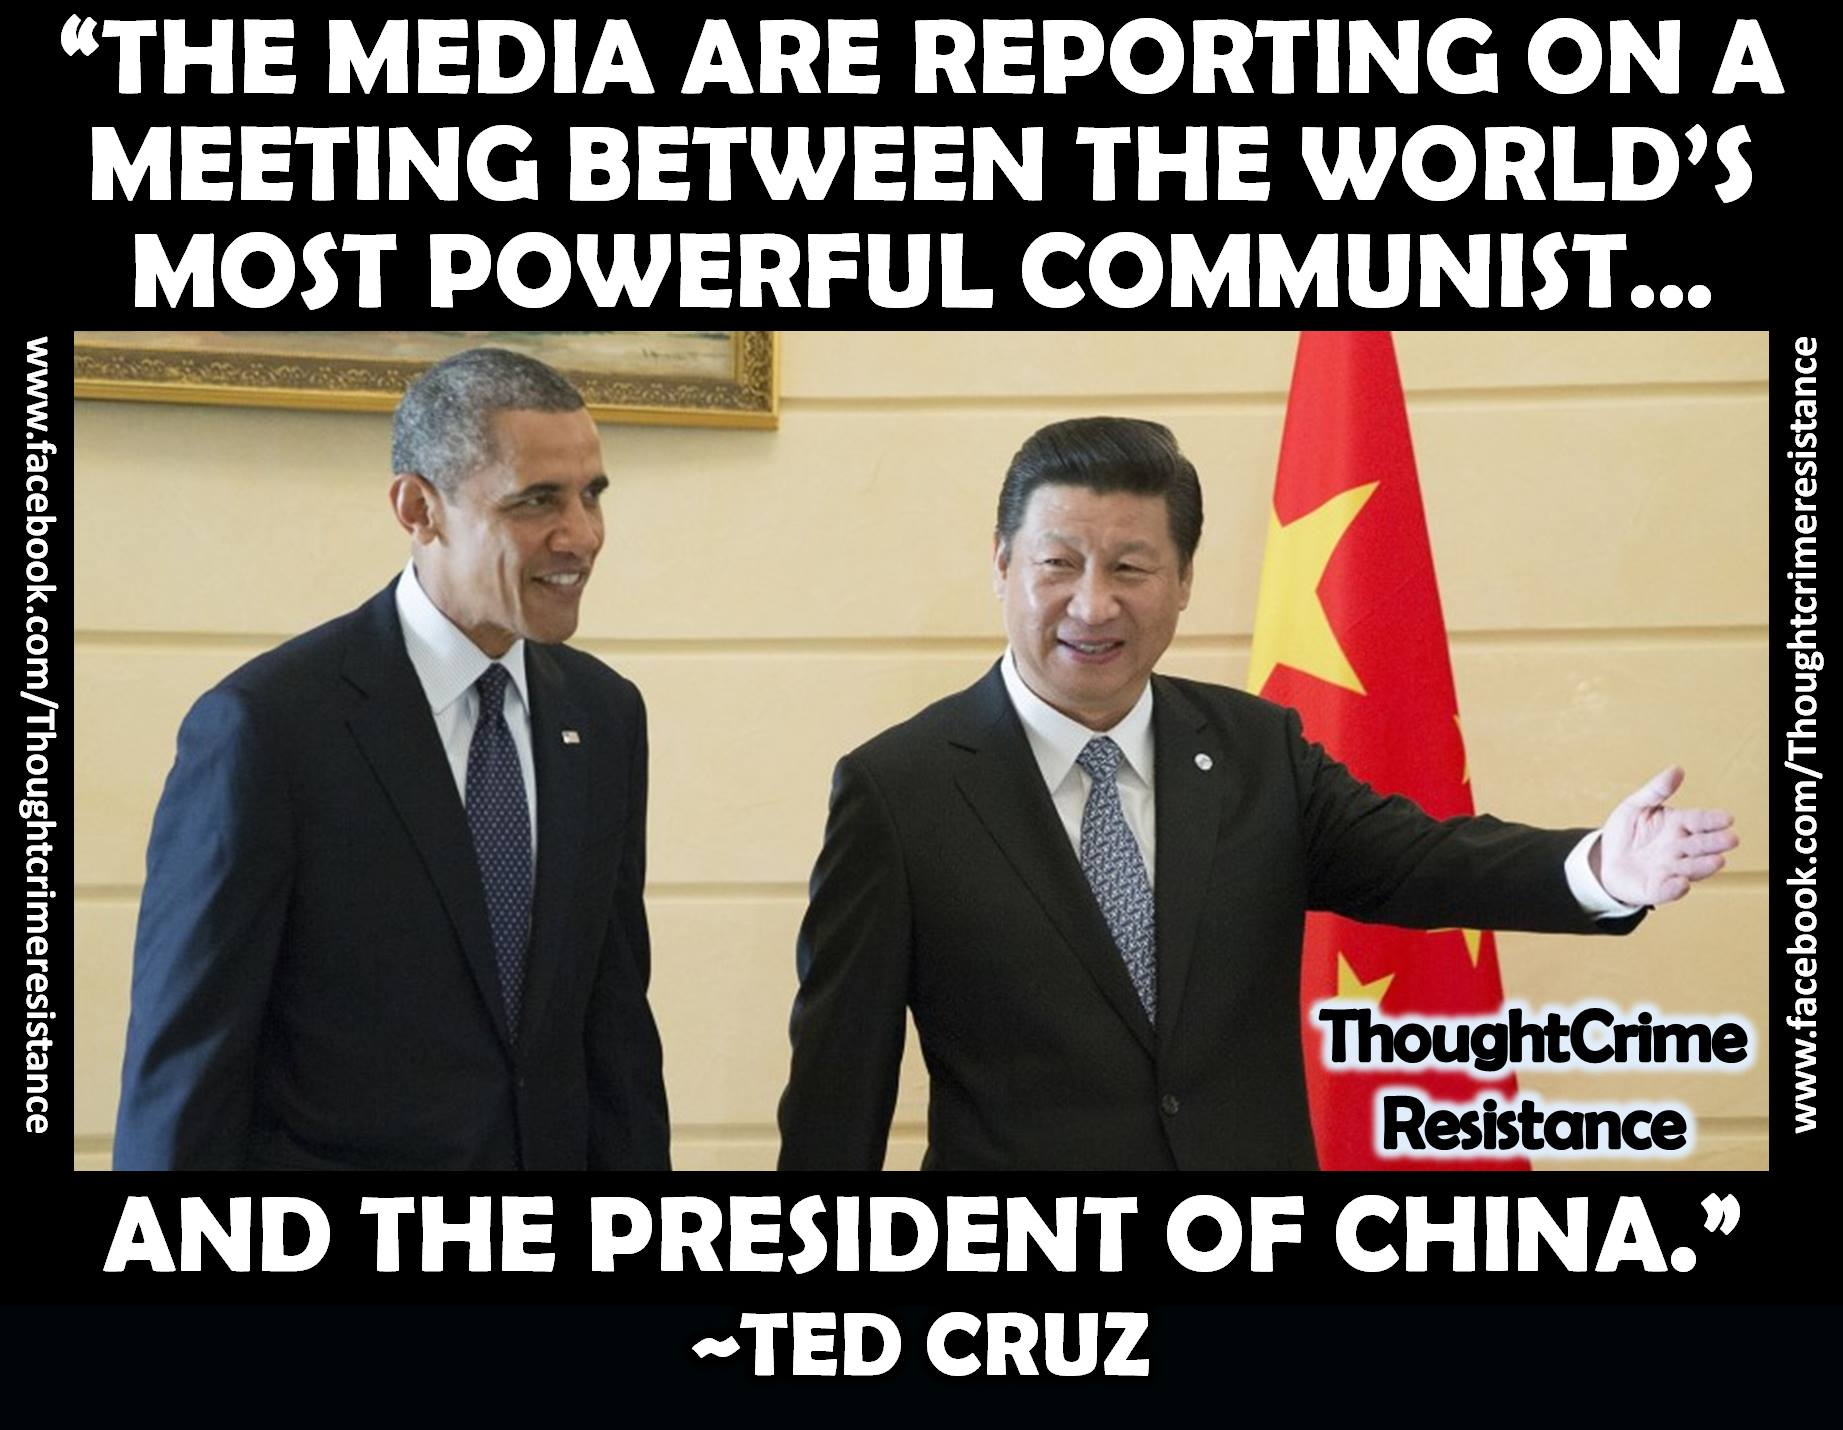 Ted Cruz on Obama and Chinese president